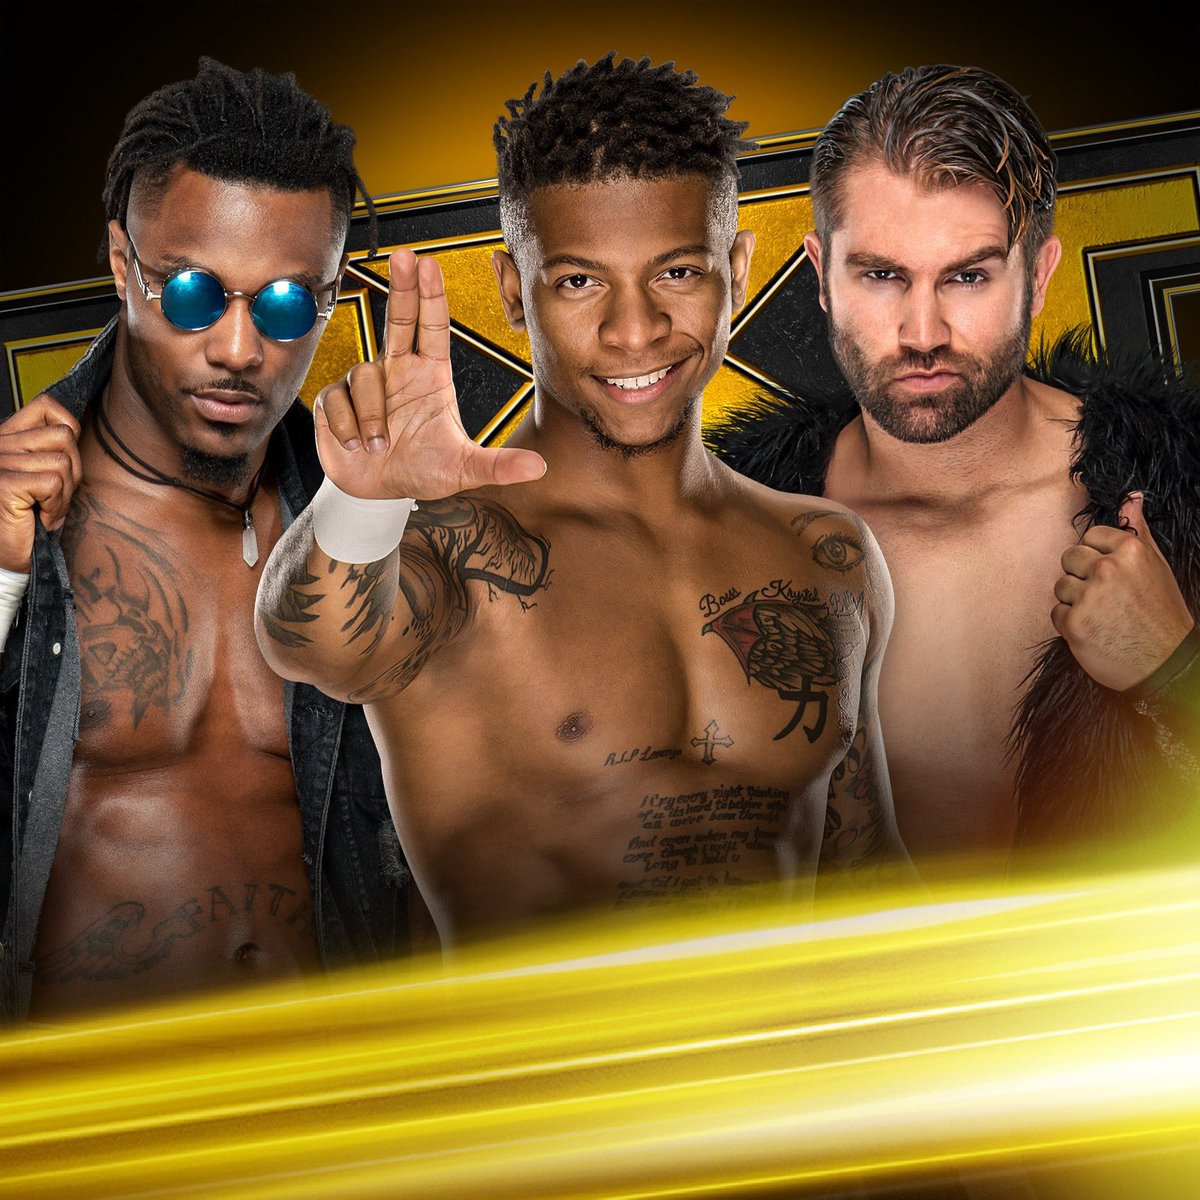 I'm so Excited for this Match Tonight on NXT~ #WWENXT @WWENXT @USA_Network